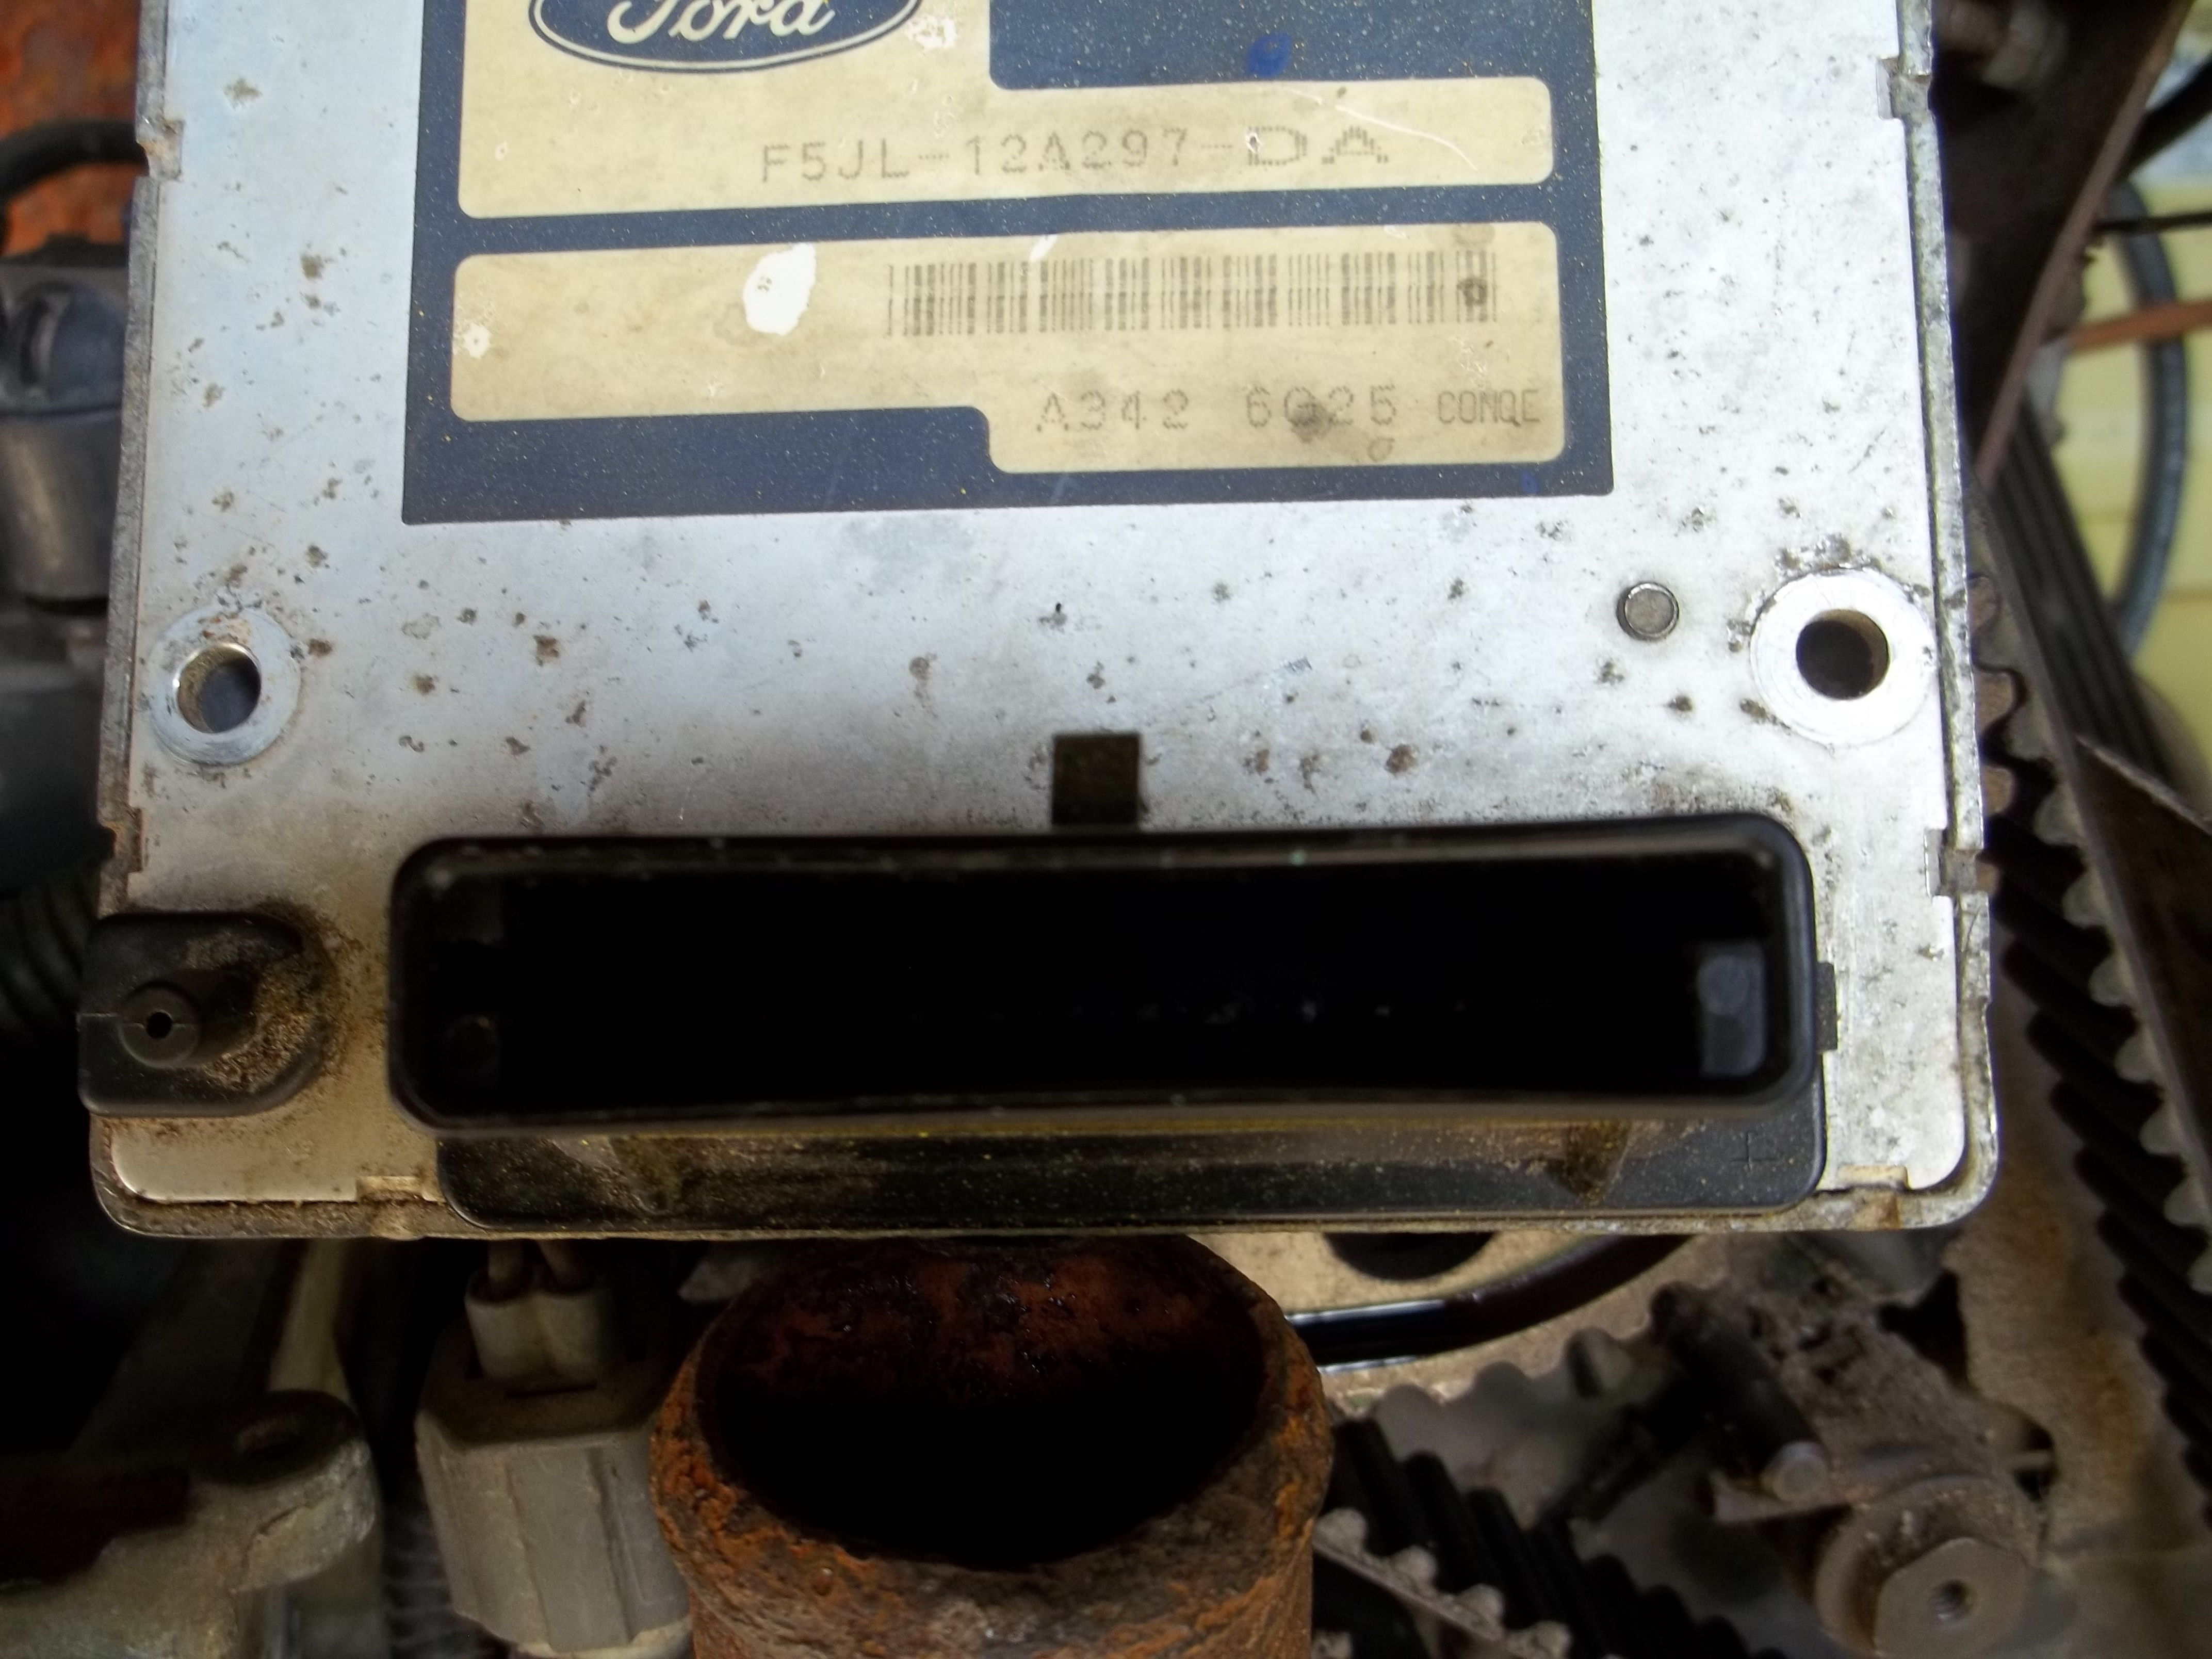 [SCHEMATICS_4HG]  I have a Ford module No. F5JL-12A297DA it is no longer available can I  change the wireing plug and use a differant | Ford Ignition Module F5jl 12a297 Da Wiring Diagram |  | JustAnswer